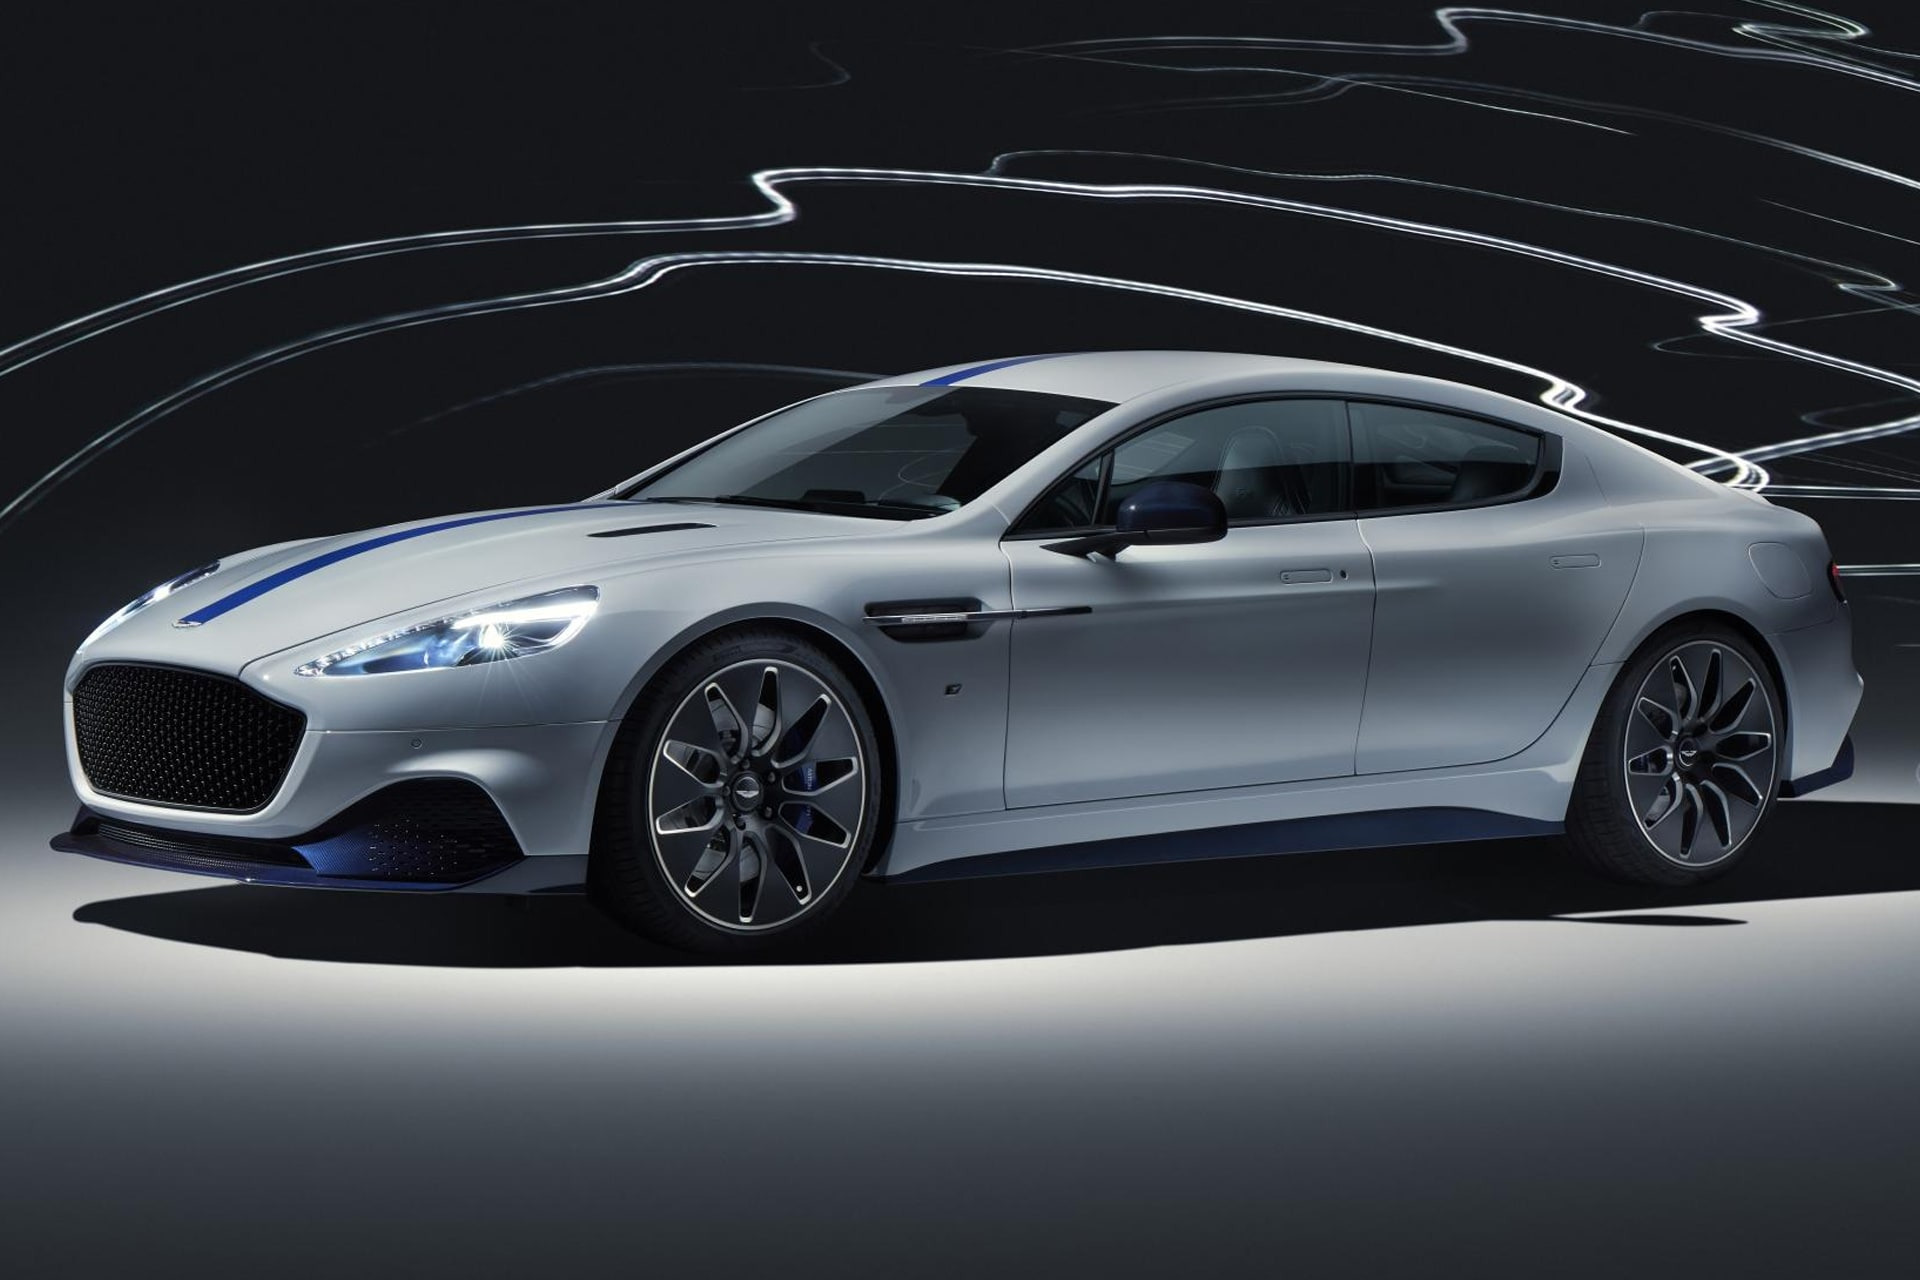 Aston Martin Have Become The Latest To Enter The Electric Car Arena